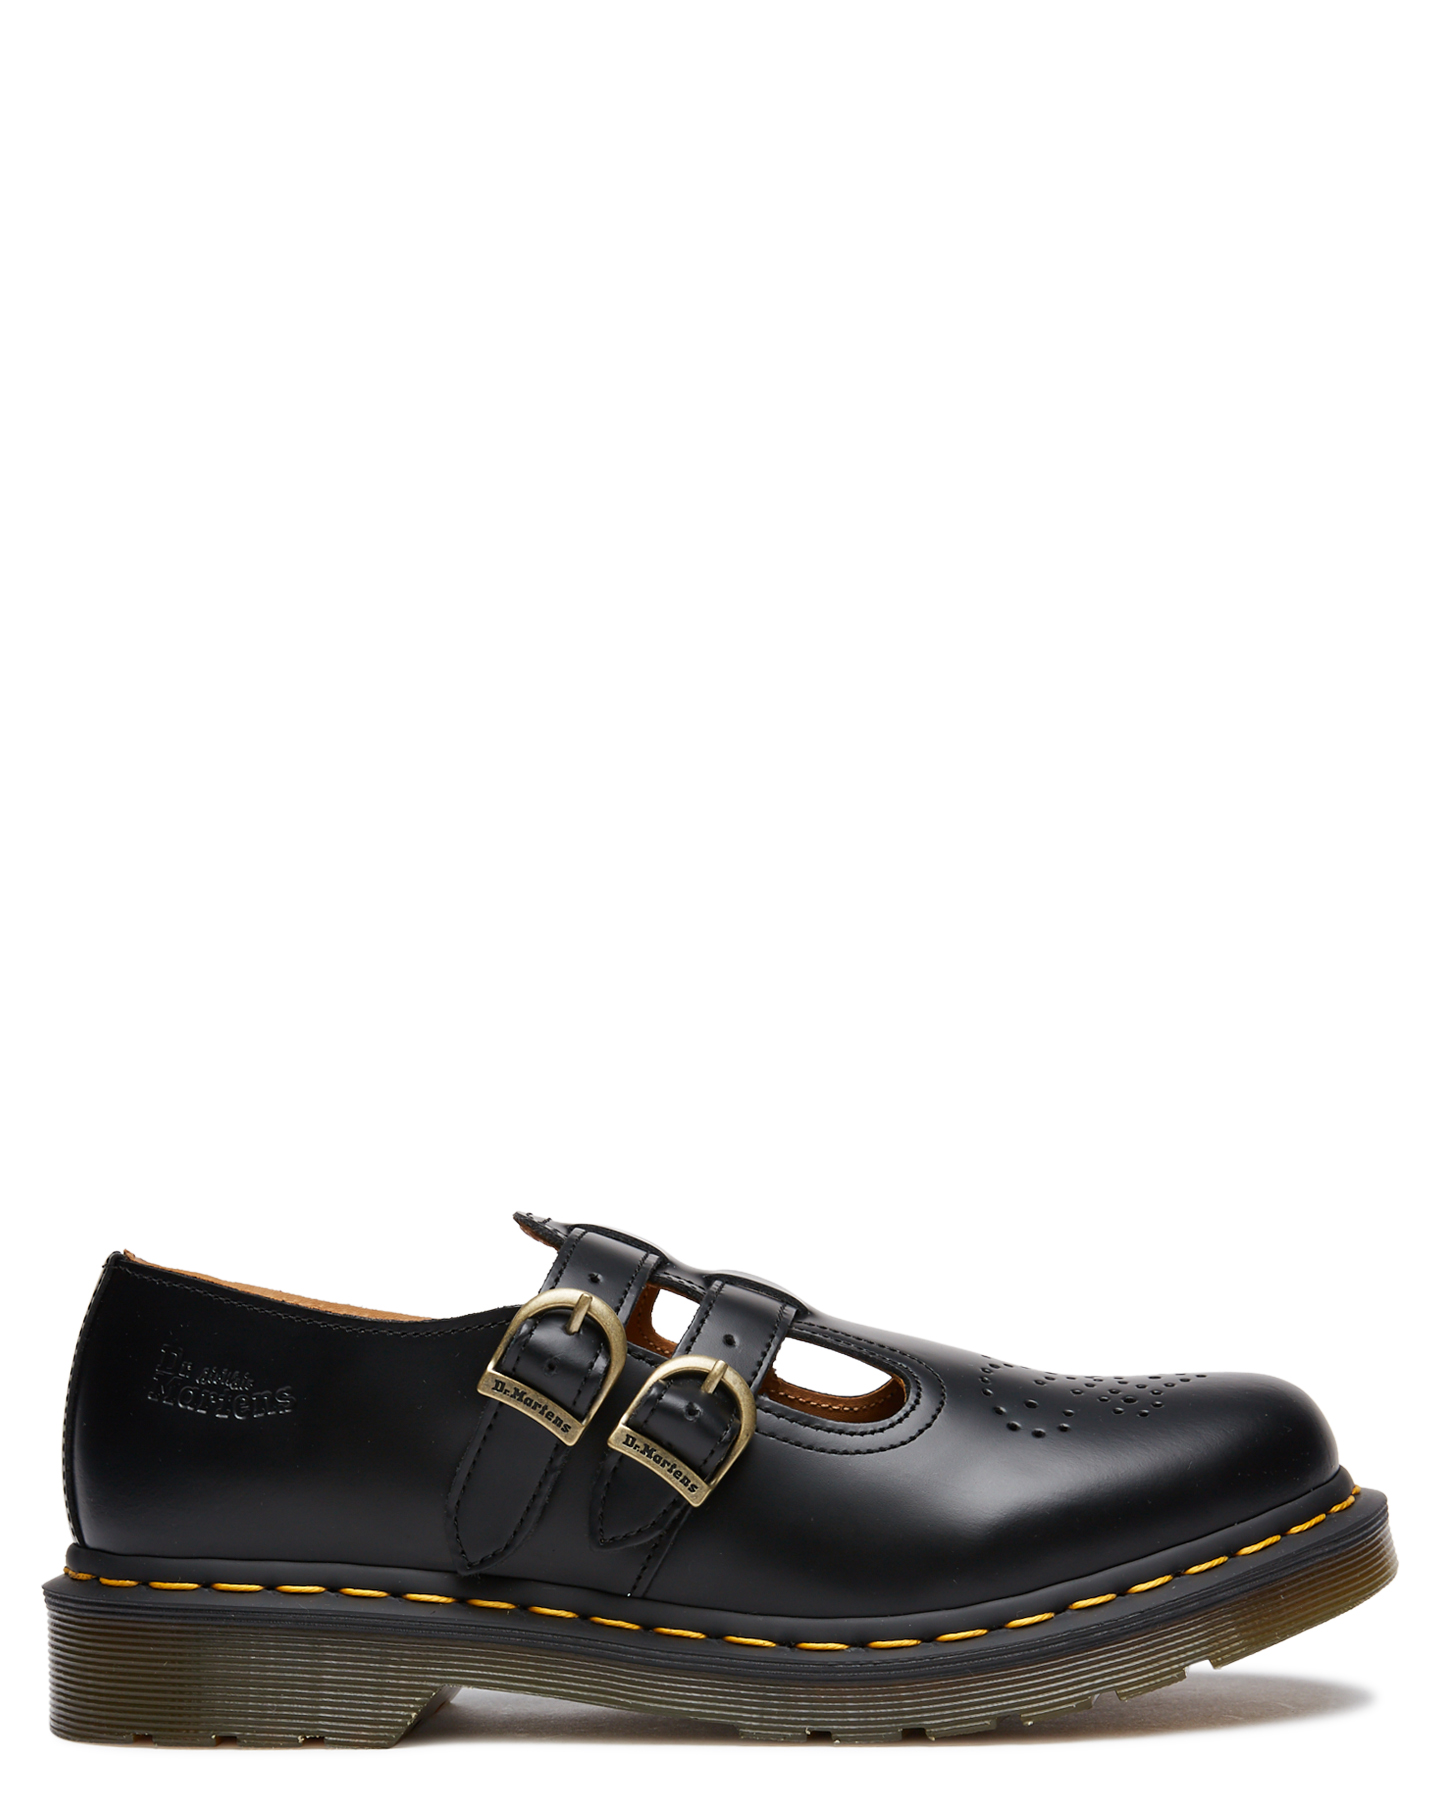 Dr Martens Classic 8065 Mary Jane Shoe